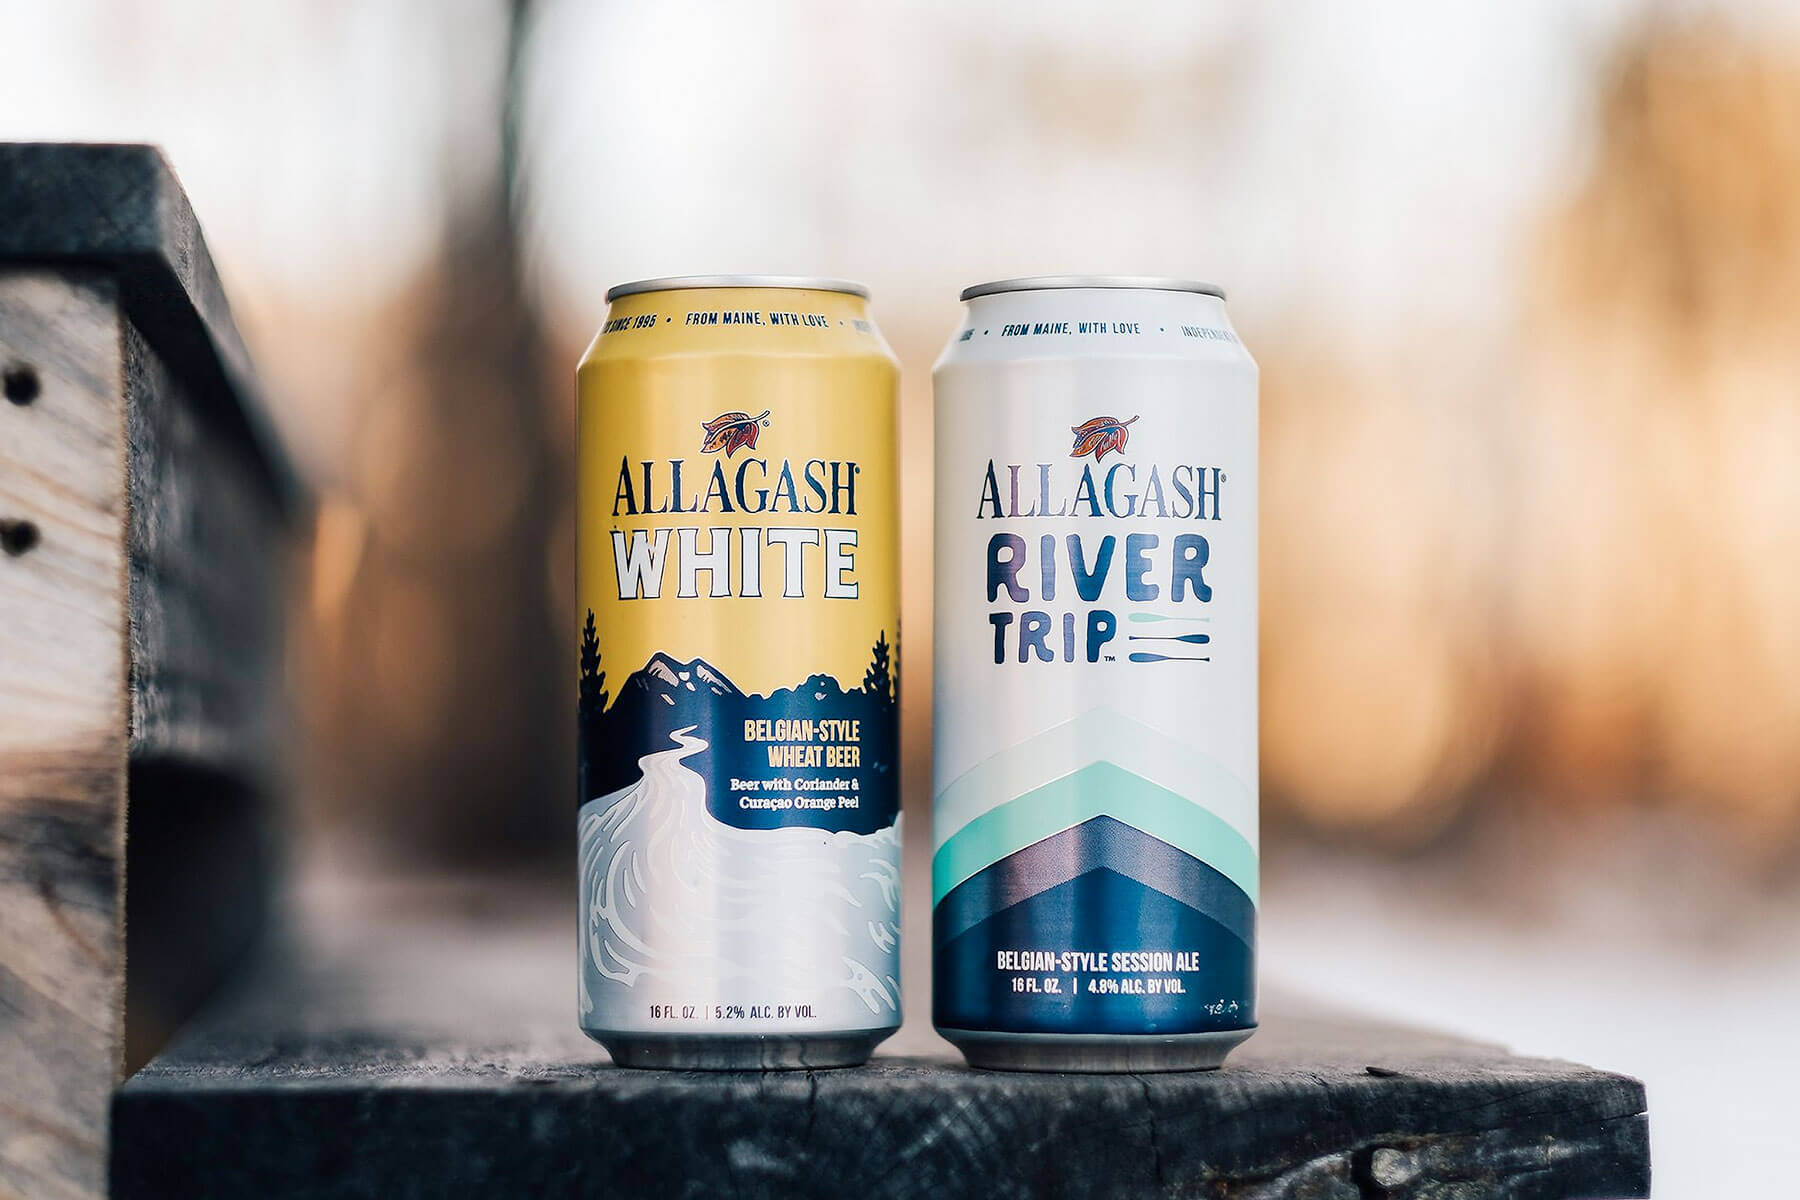 The flagship beers Allagash White and River Trip are two of the core offerings the Portland, Maine brewery will begin distributing to The Sunshine State.